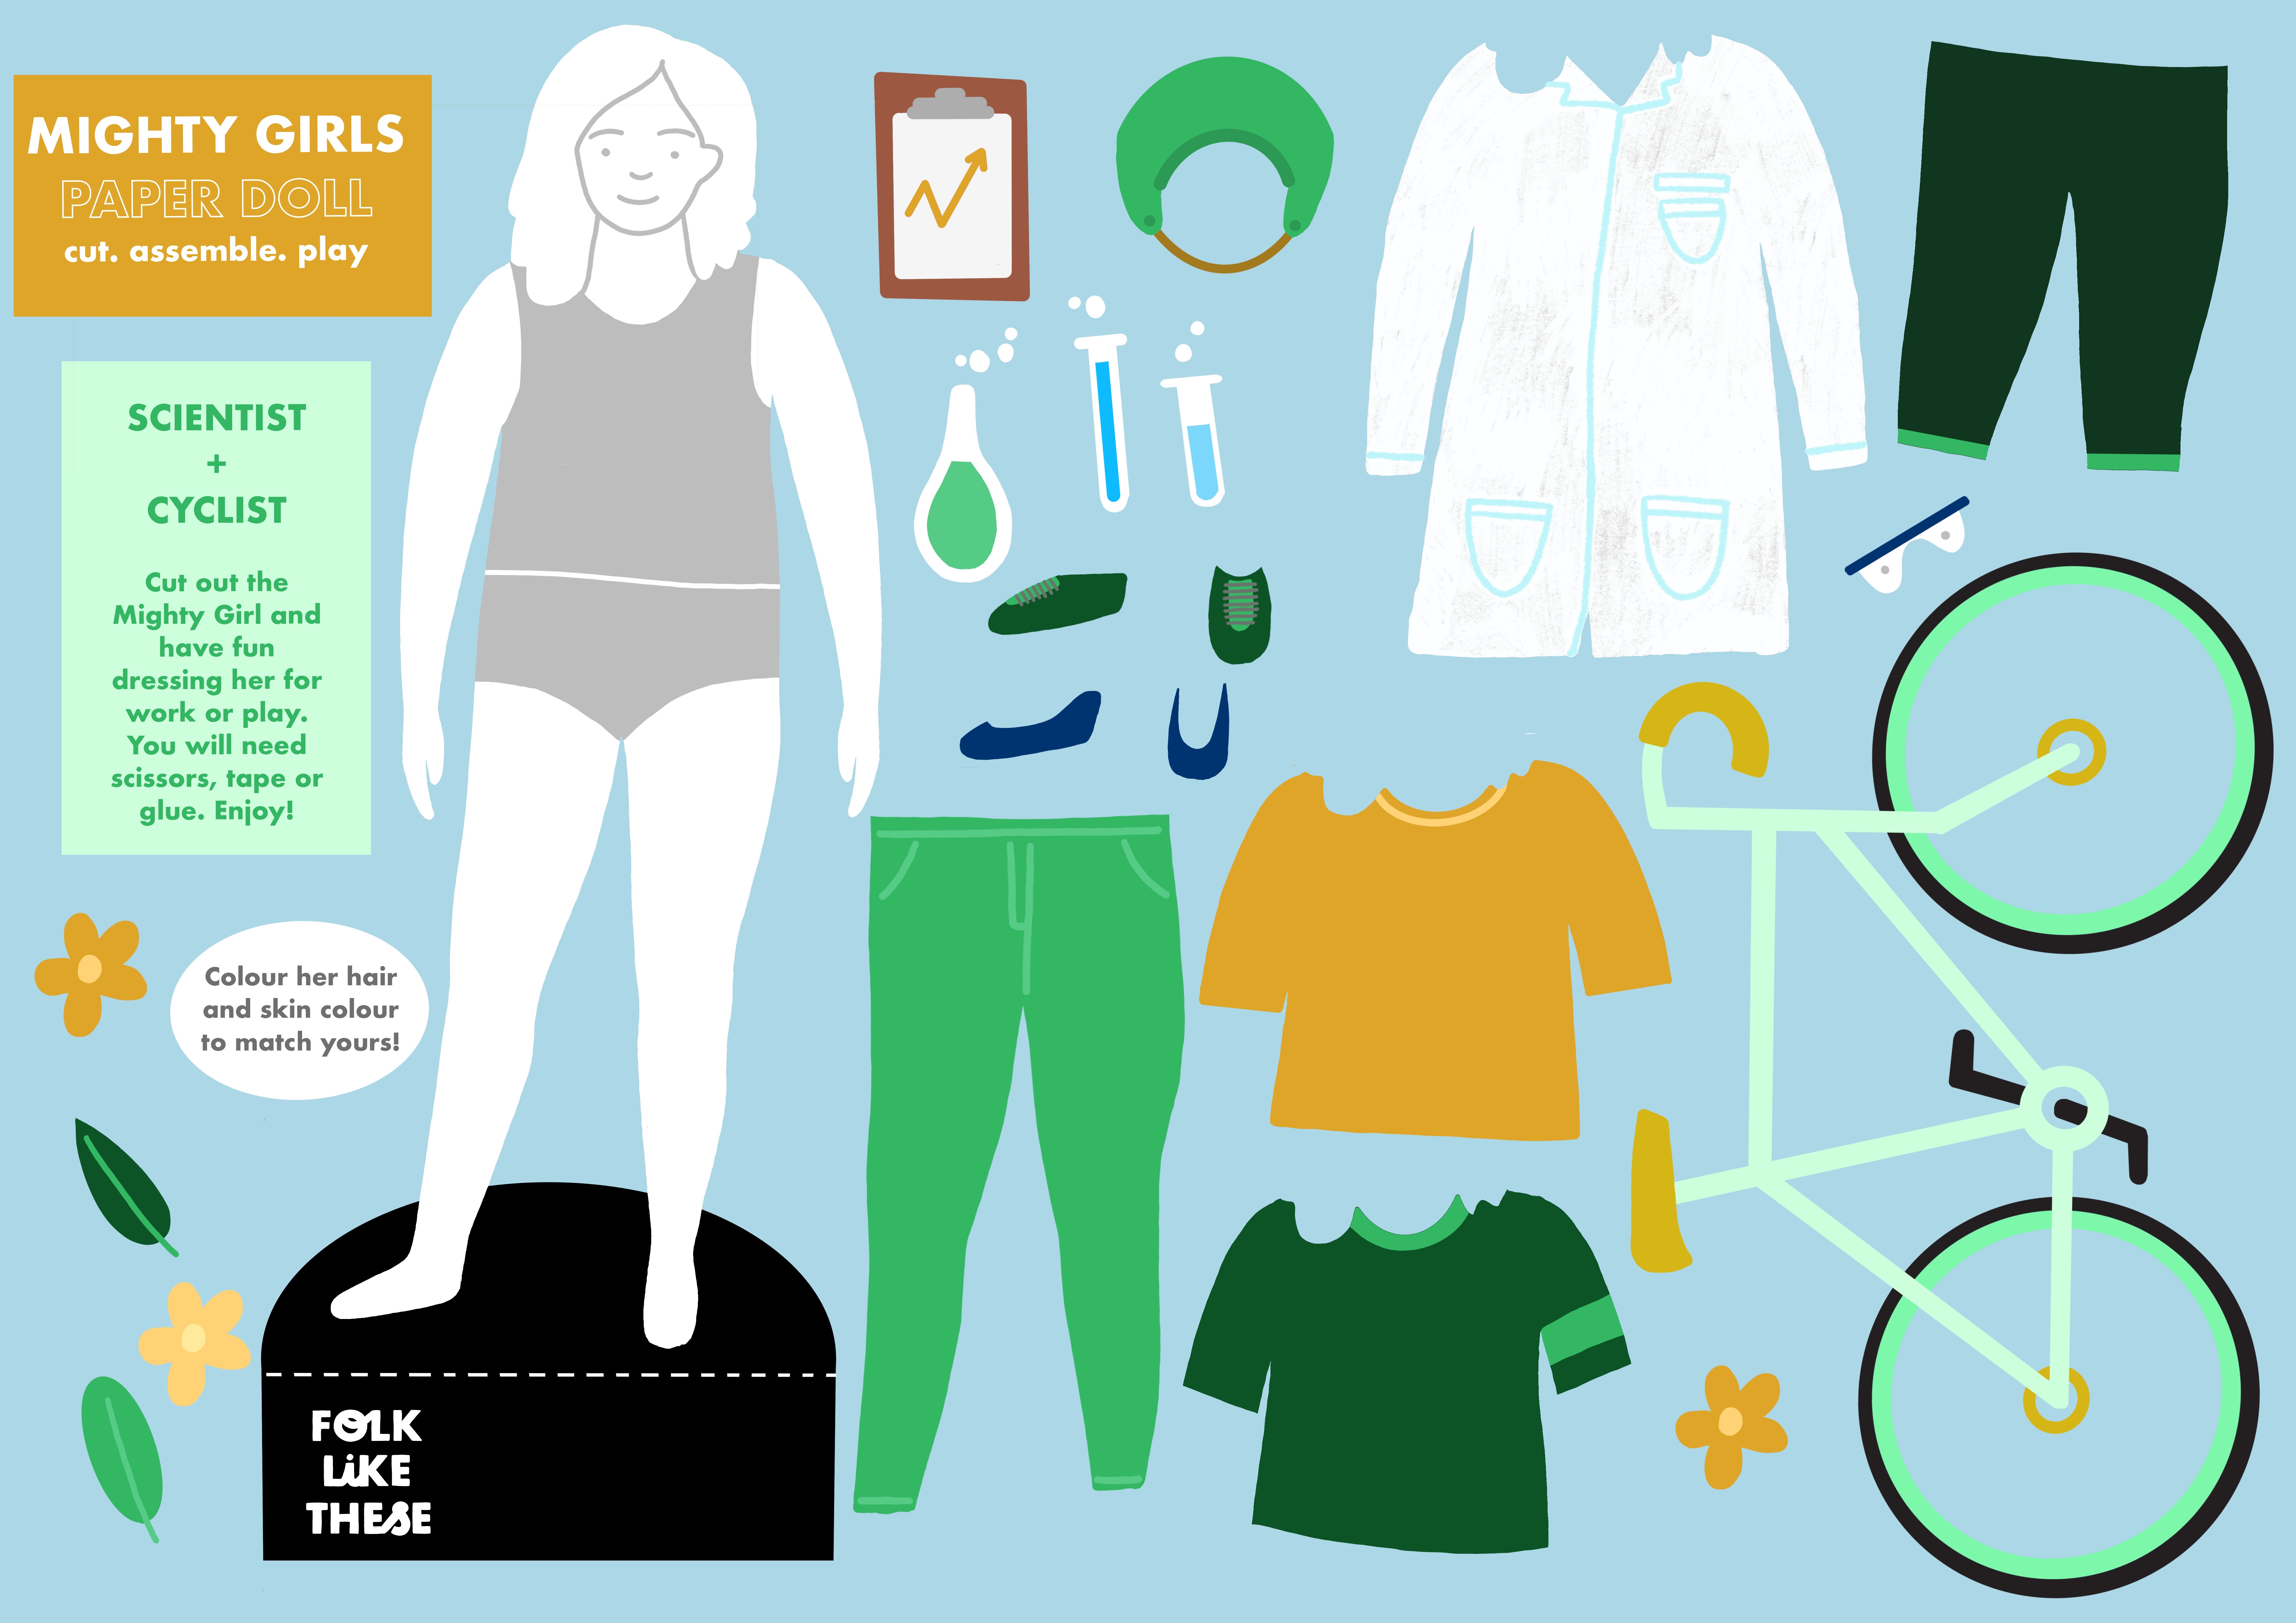 Mighty Girls Paper Doll - Scientist and Cyclist